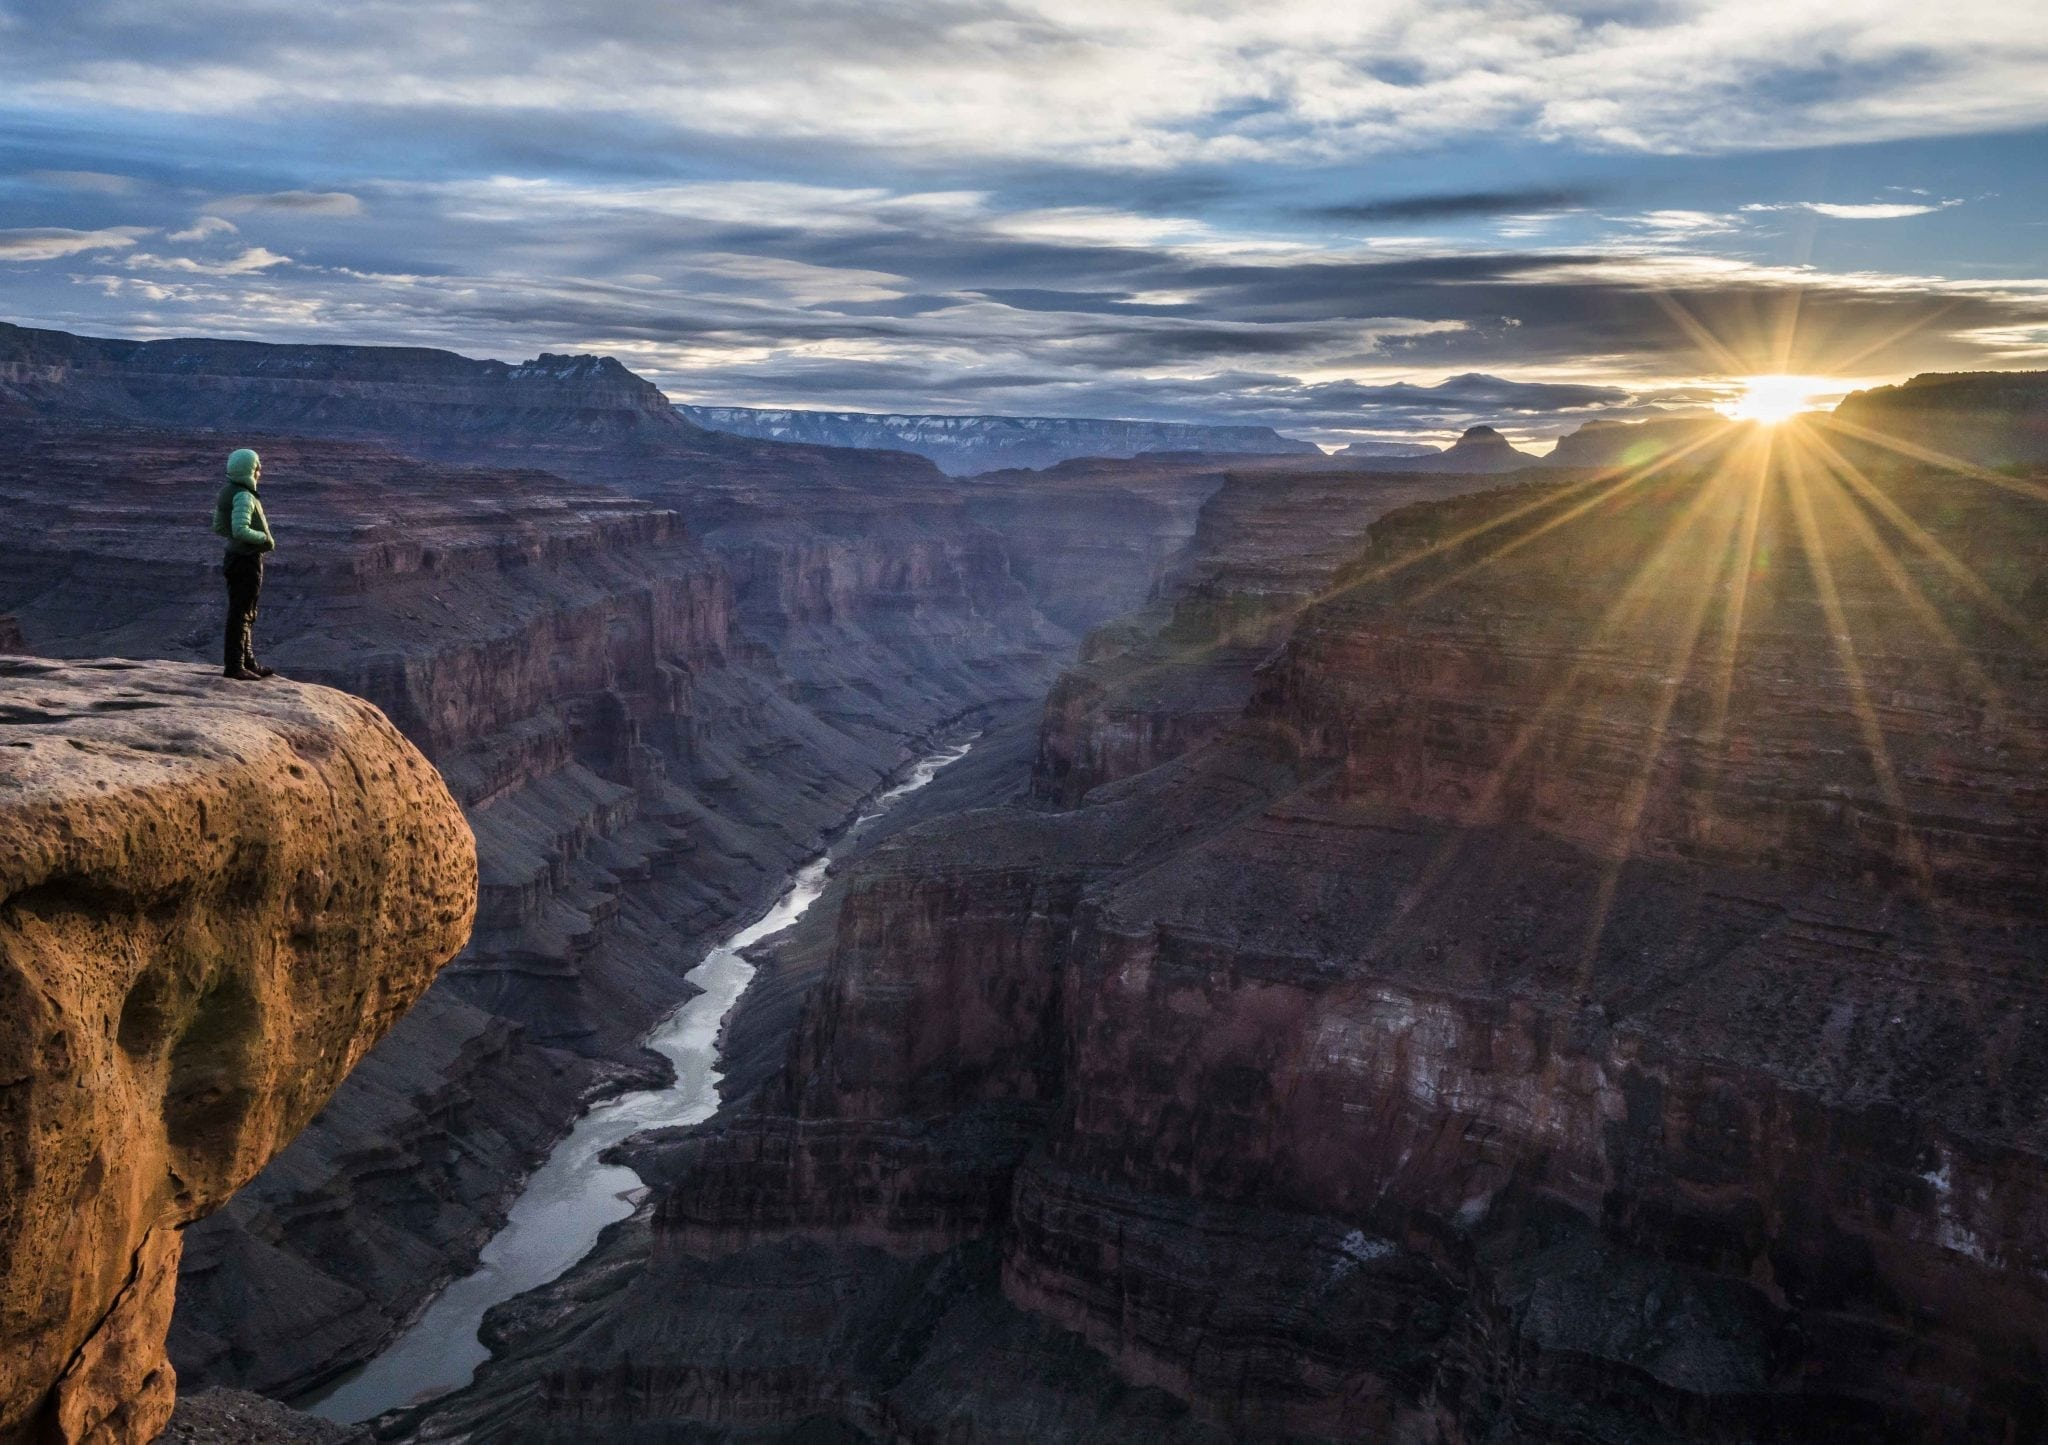 Between River and Rim: Hiking the Grand Canyon